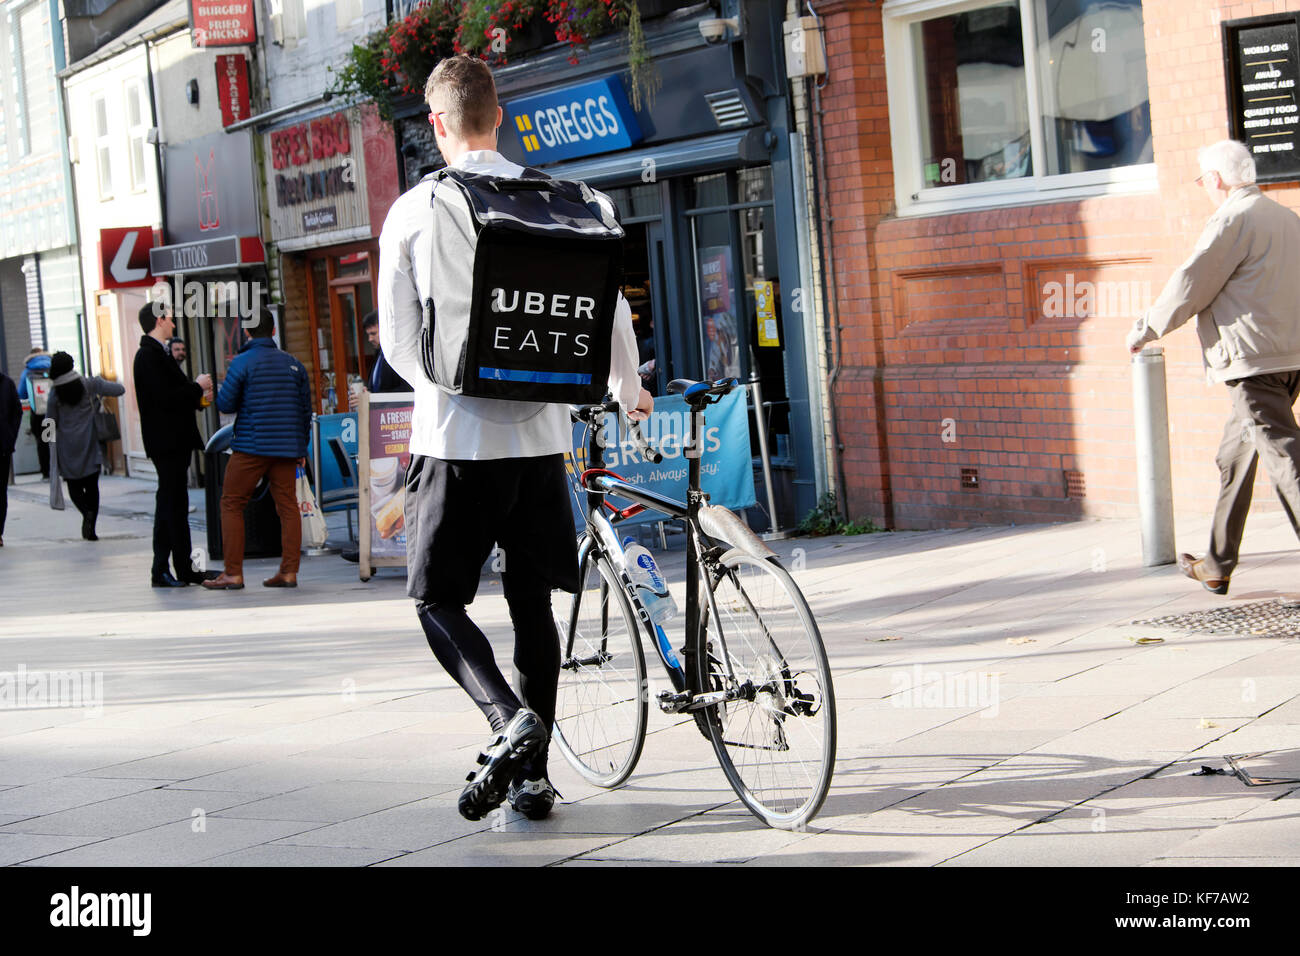 Young man walking with bicycle and UBER EATS (Ubereats) food delivery rucksack back view Cardiff City Centre Wales - Stock Image